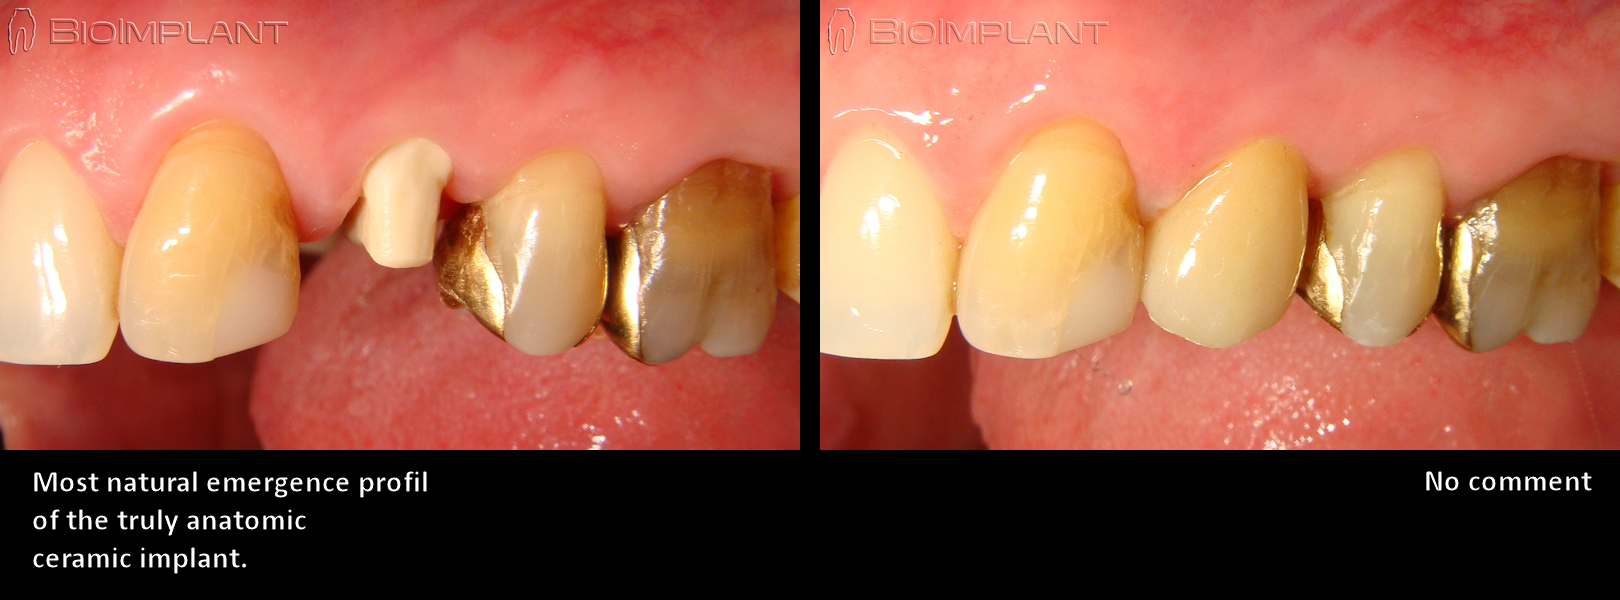 truly anatomic ceramic implant keramik implantat